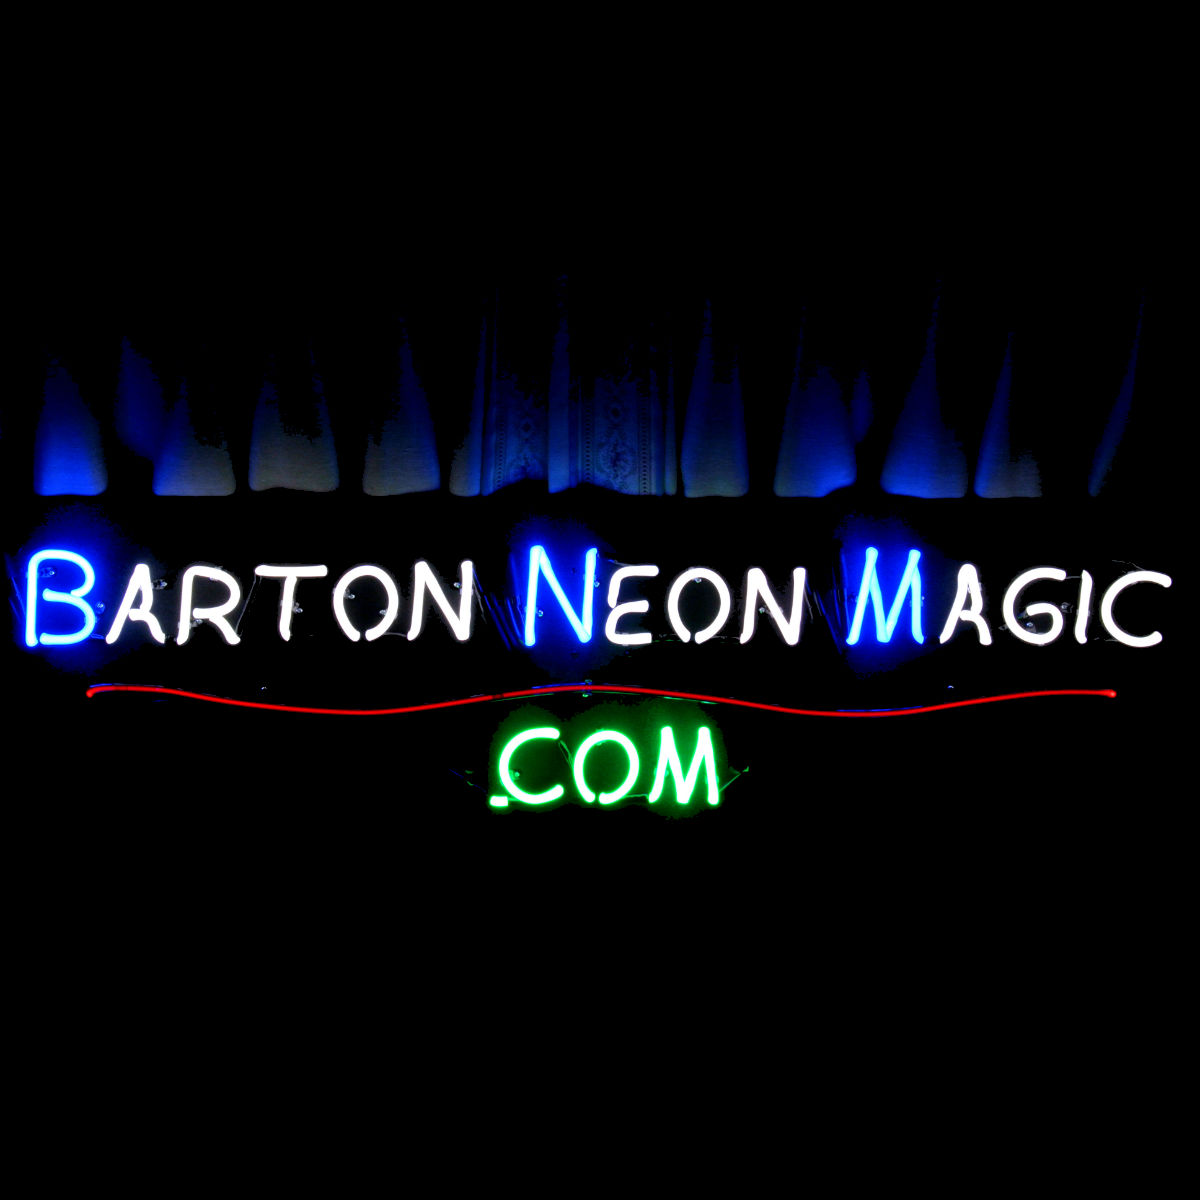 Designer Custom Neon Chandeliers, Sculptures, and Artworks - hand-blown by John Barton - famous USA Neon Glass Artist - BartonNeonMagic.com